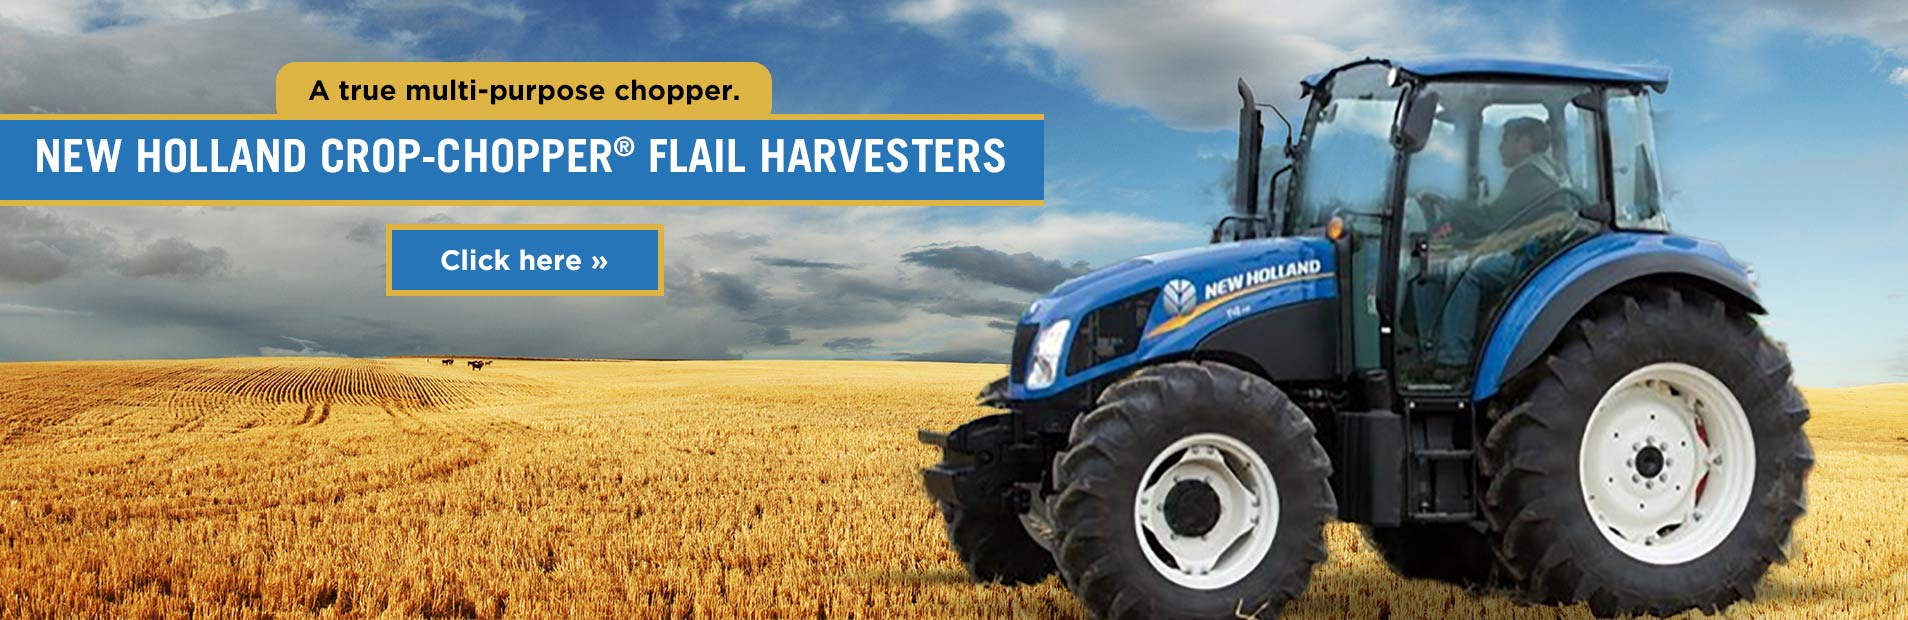 Click here to view our selection of New Holland Crop-Chopper® flail harvesters!